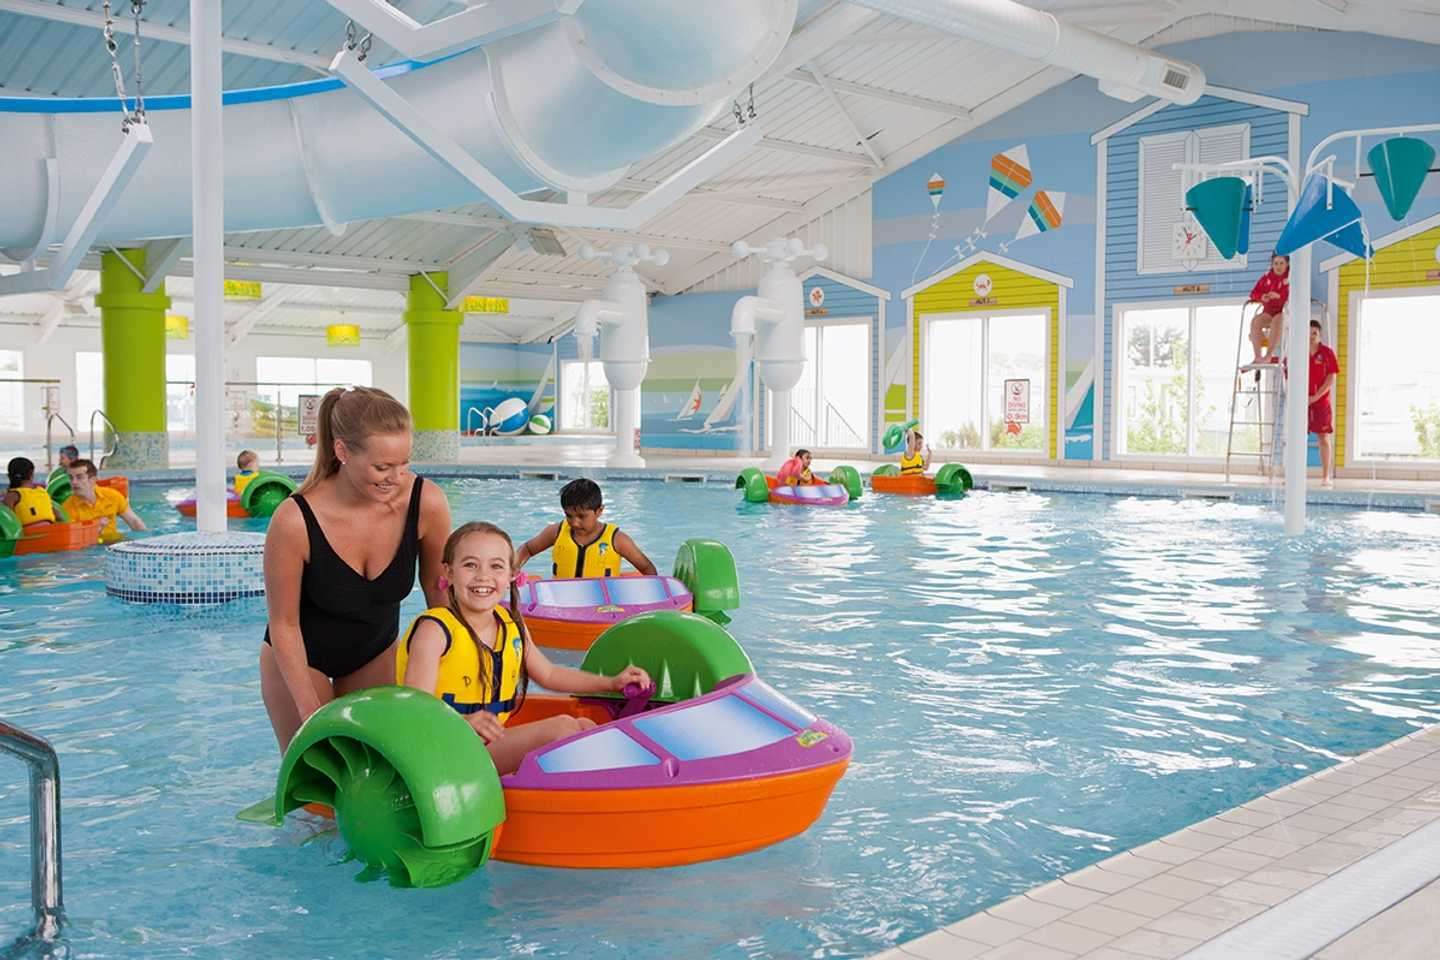 Aqua paddlers in the indoor swimming pool at Presthaven